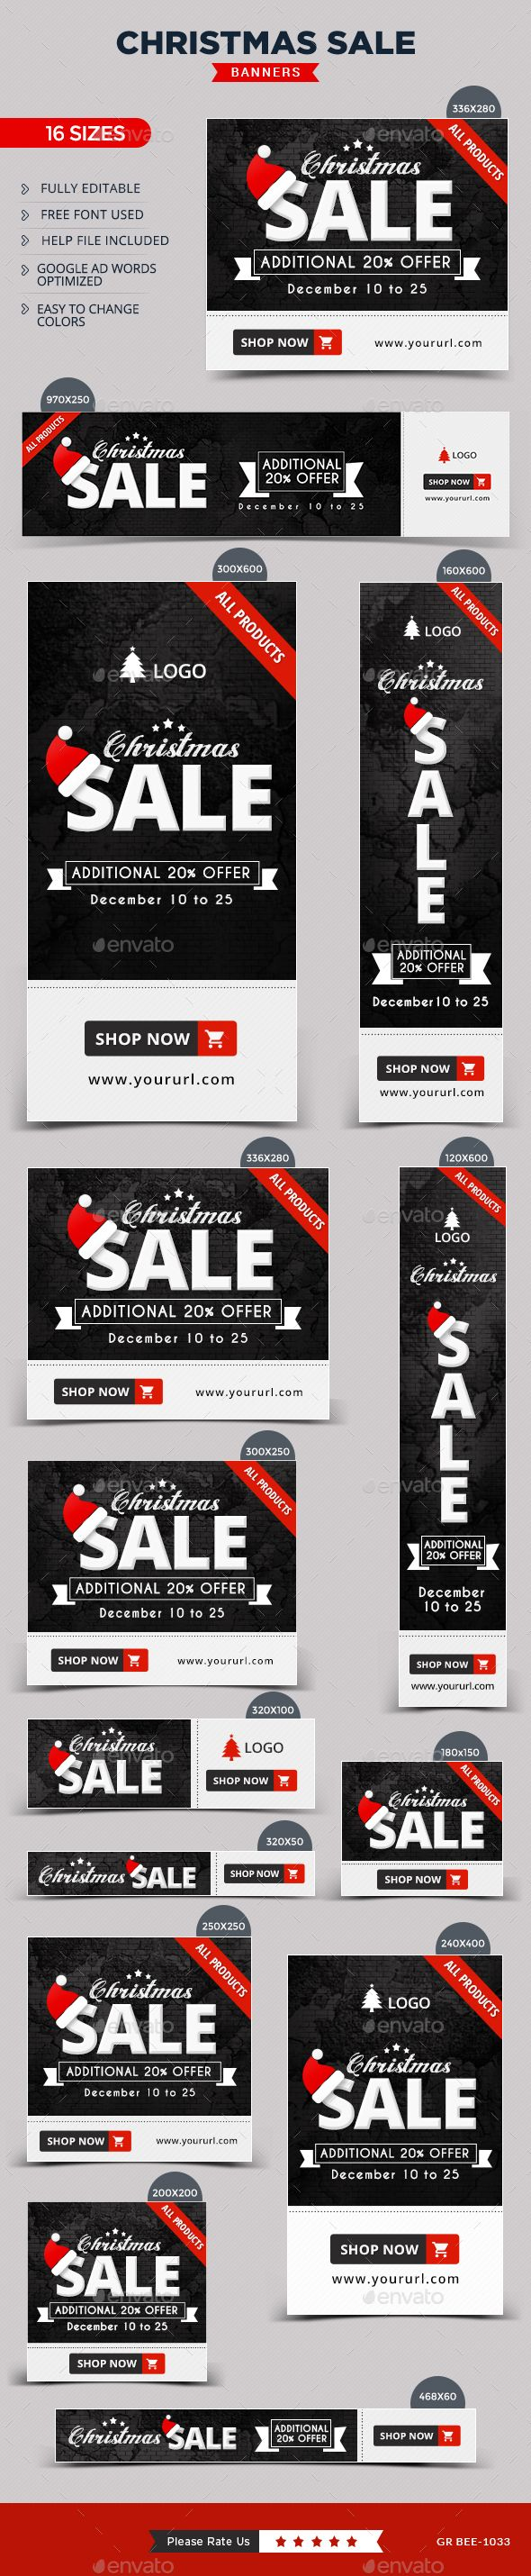 Christmas Web Banners Template PSD #design Download: http://graphicriver.net/item/christmas-banners/14018086?ref=ksioks